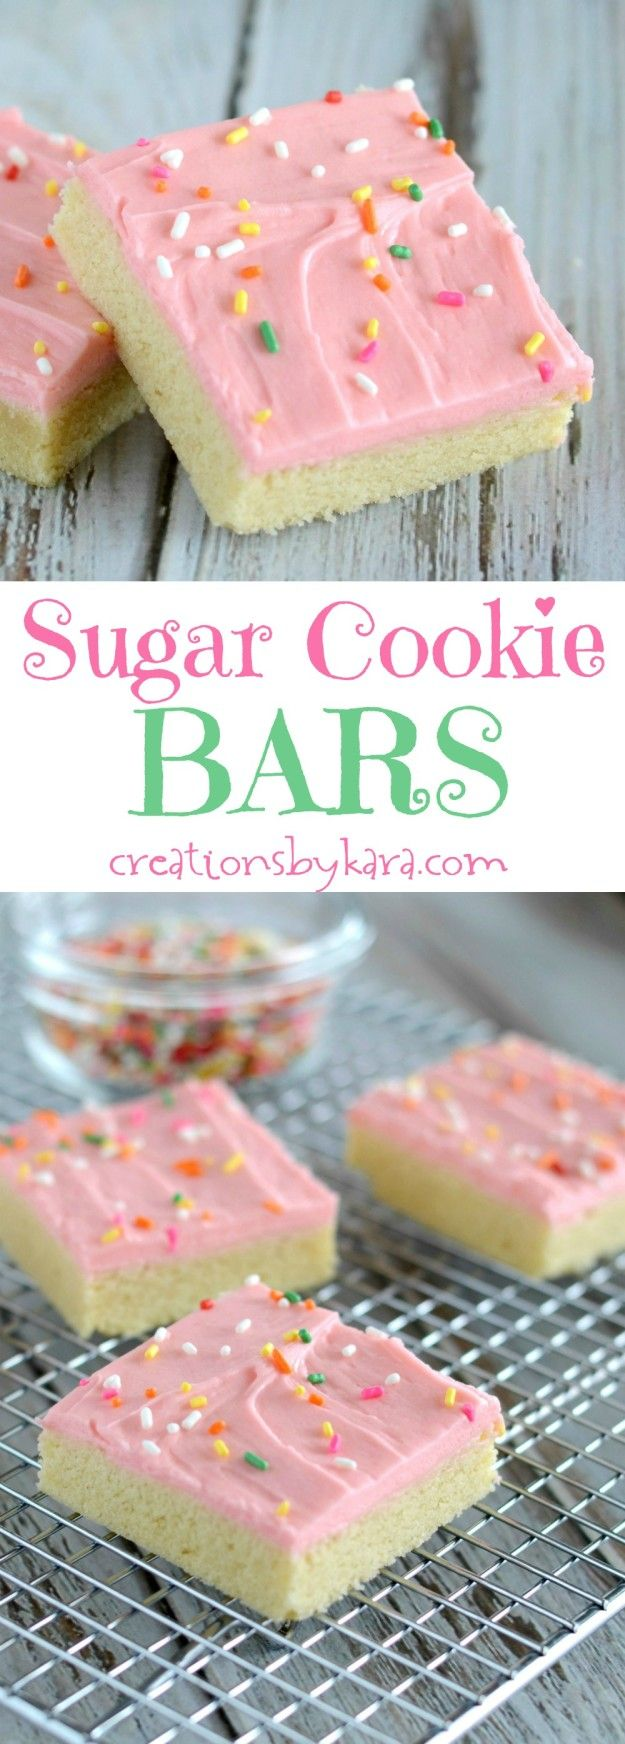 Sugar Cookie Bars – The fabulousness of sugar cookies without all the rolling, cutting, and decorating. Everyone LOVES these soft and delicious bars!